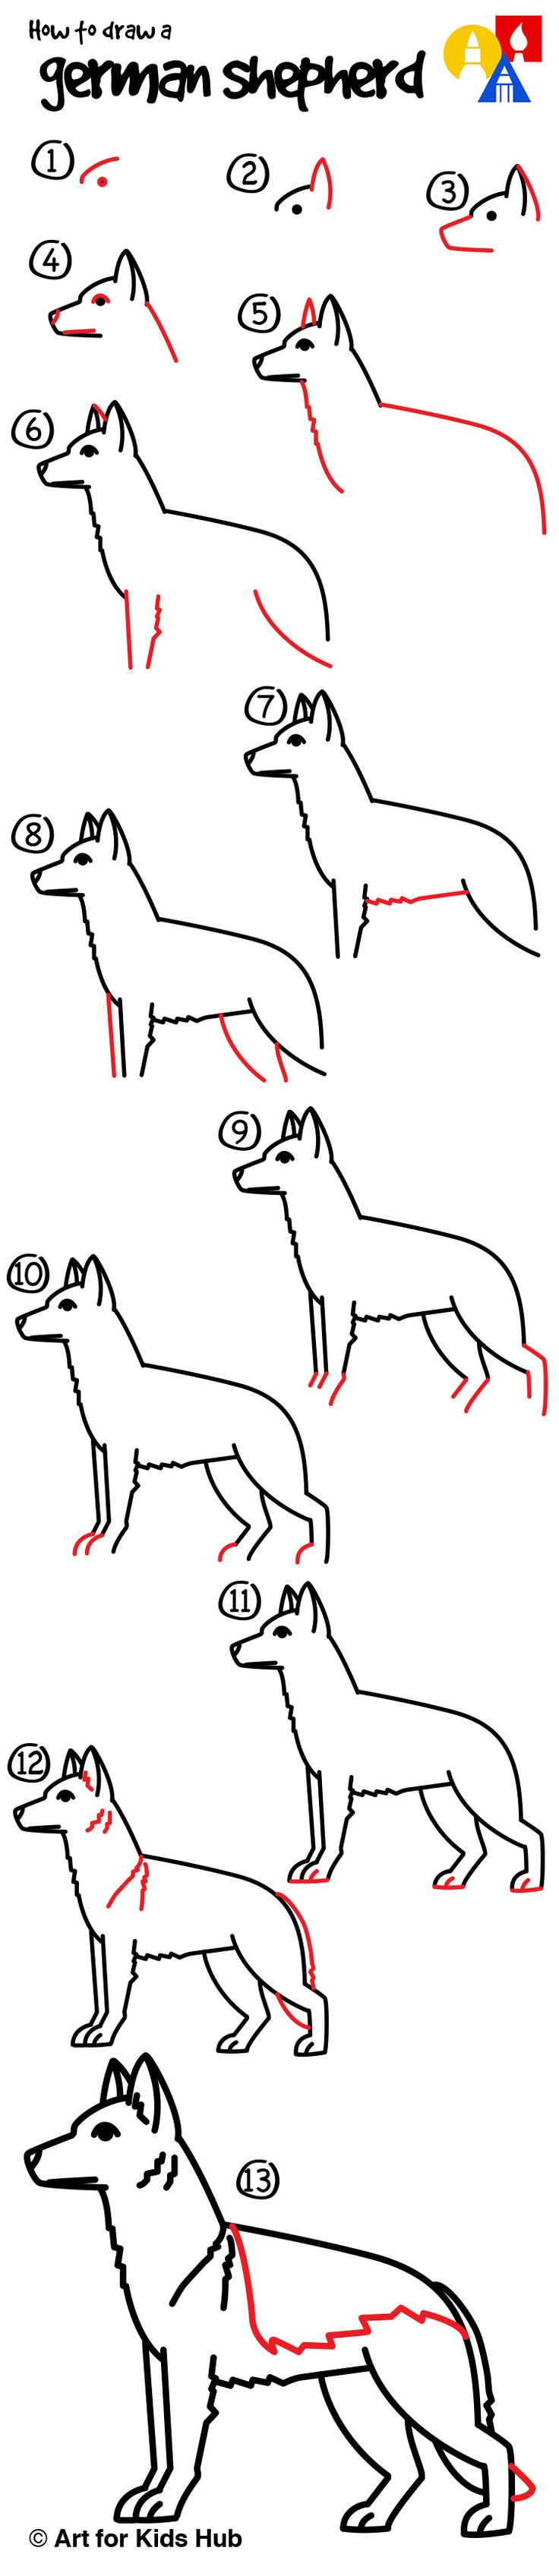 How To Draw A German Shepherd  Art For Kids Hub